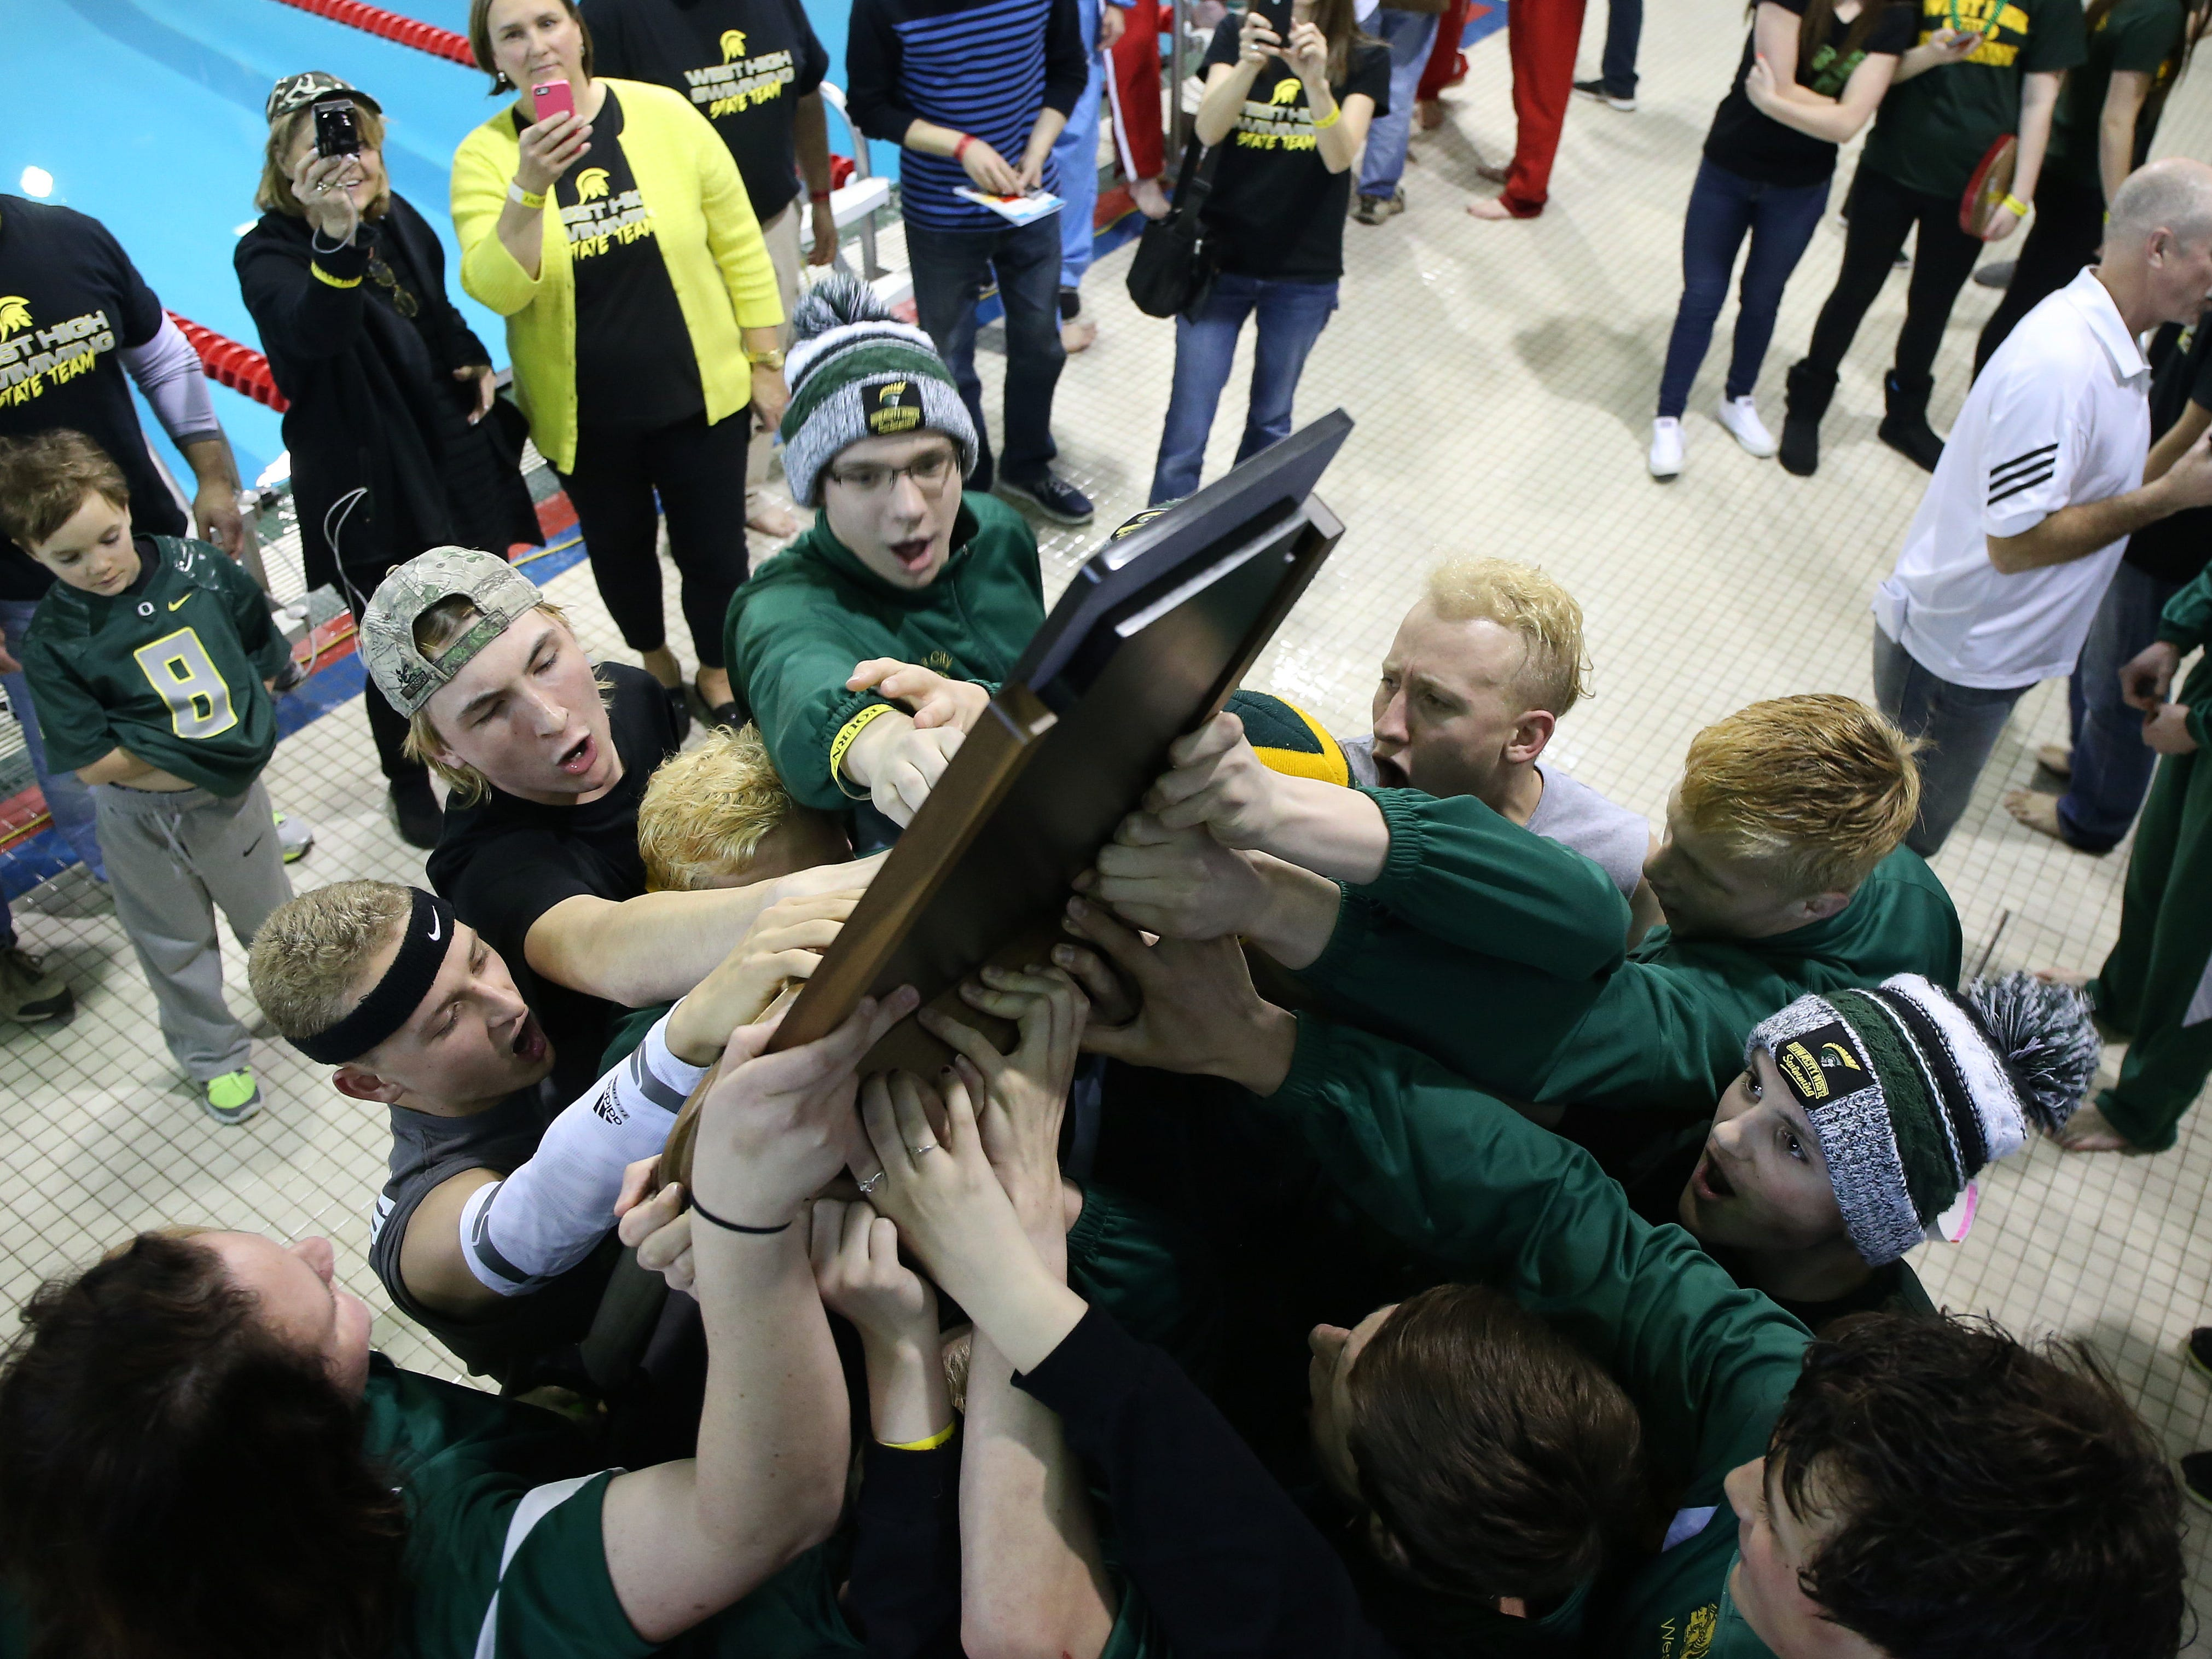 Members of the Iowa City West swim team celebrate after winning the state title on Saturday during the 2015 Iowa state boys' swim tournament in Marshalltown.